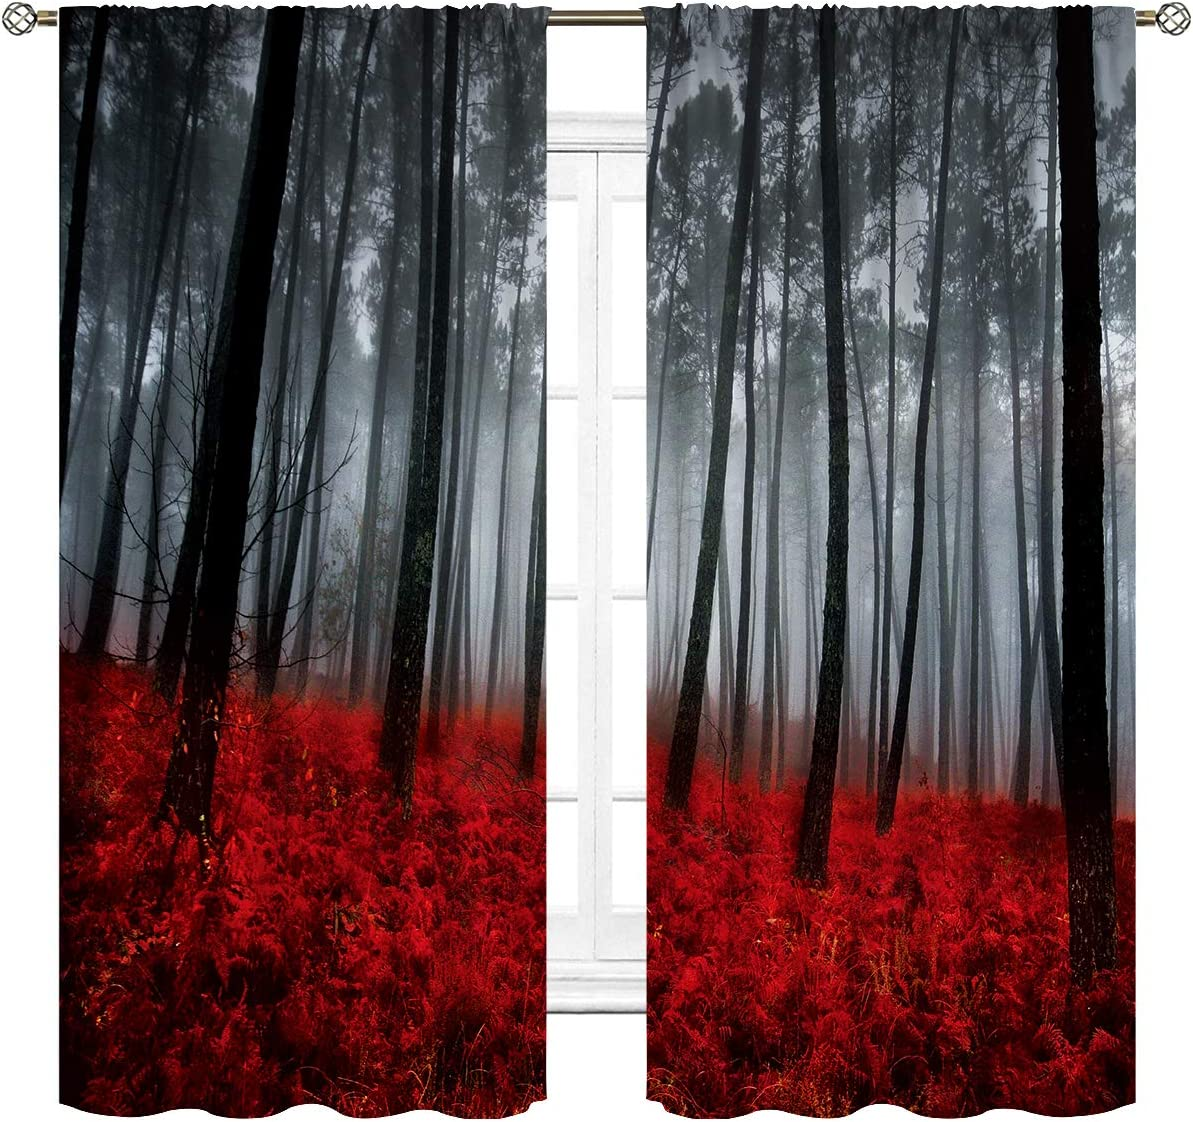 Cinbloo Black and Red Mysterious Forest Curtains Rod Pocket Rainy Foggy Scene Floral Tree Modern Art Printed Living Room Bedroom Window Drapes Treatment Fabric 2 Panels 42 W x 63 L Inch